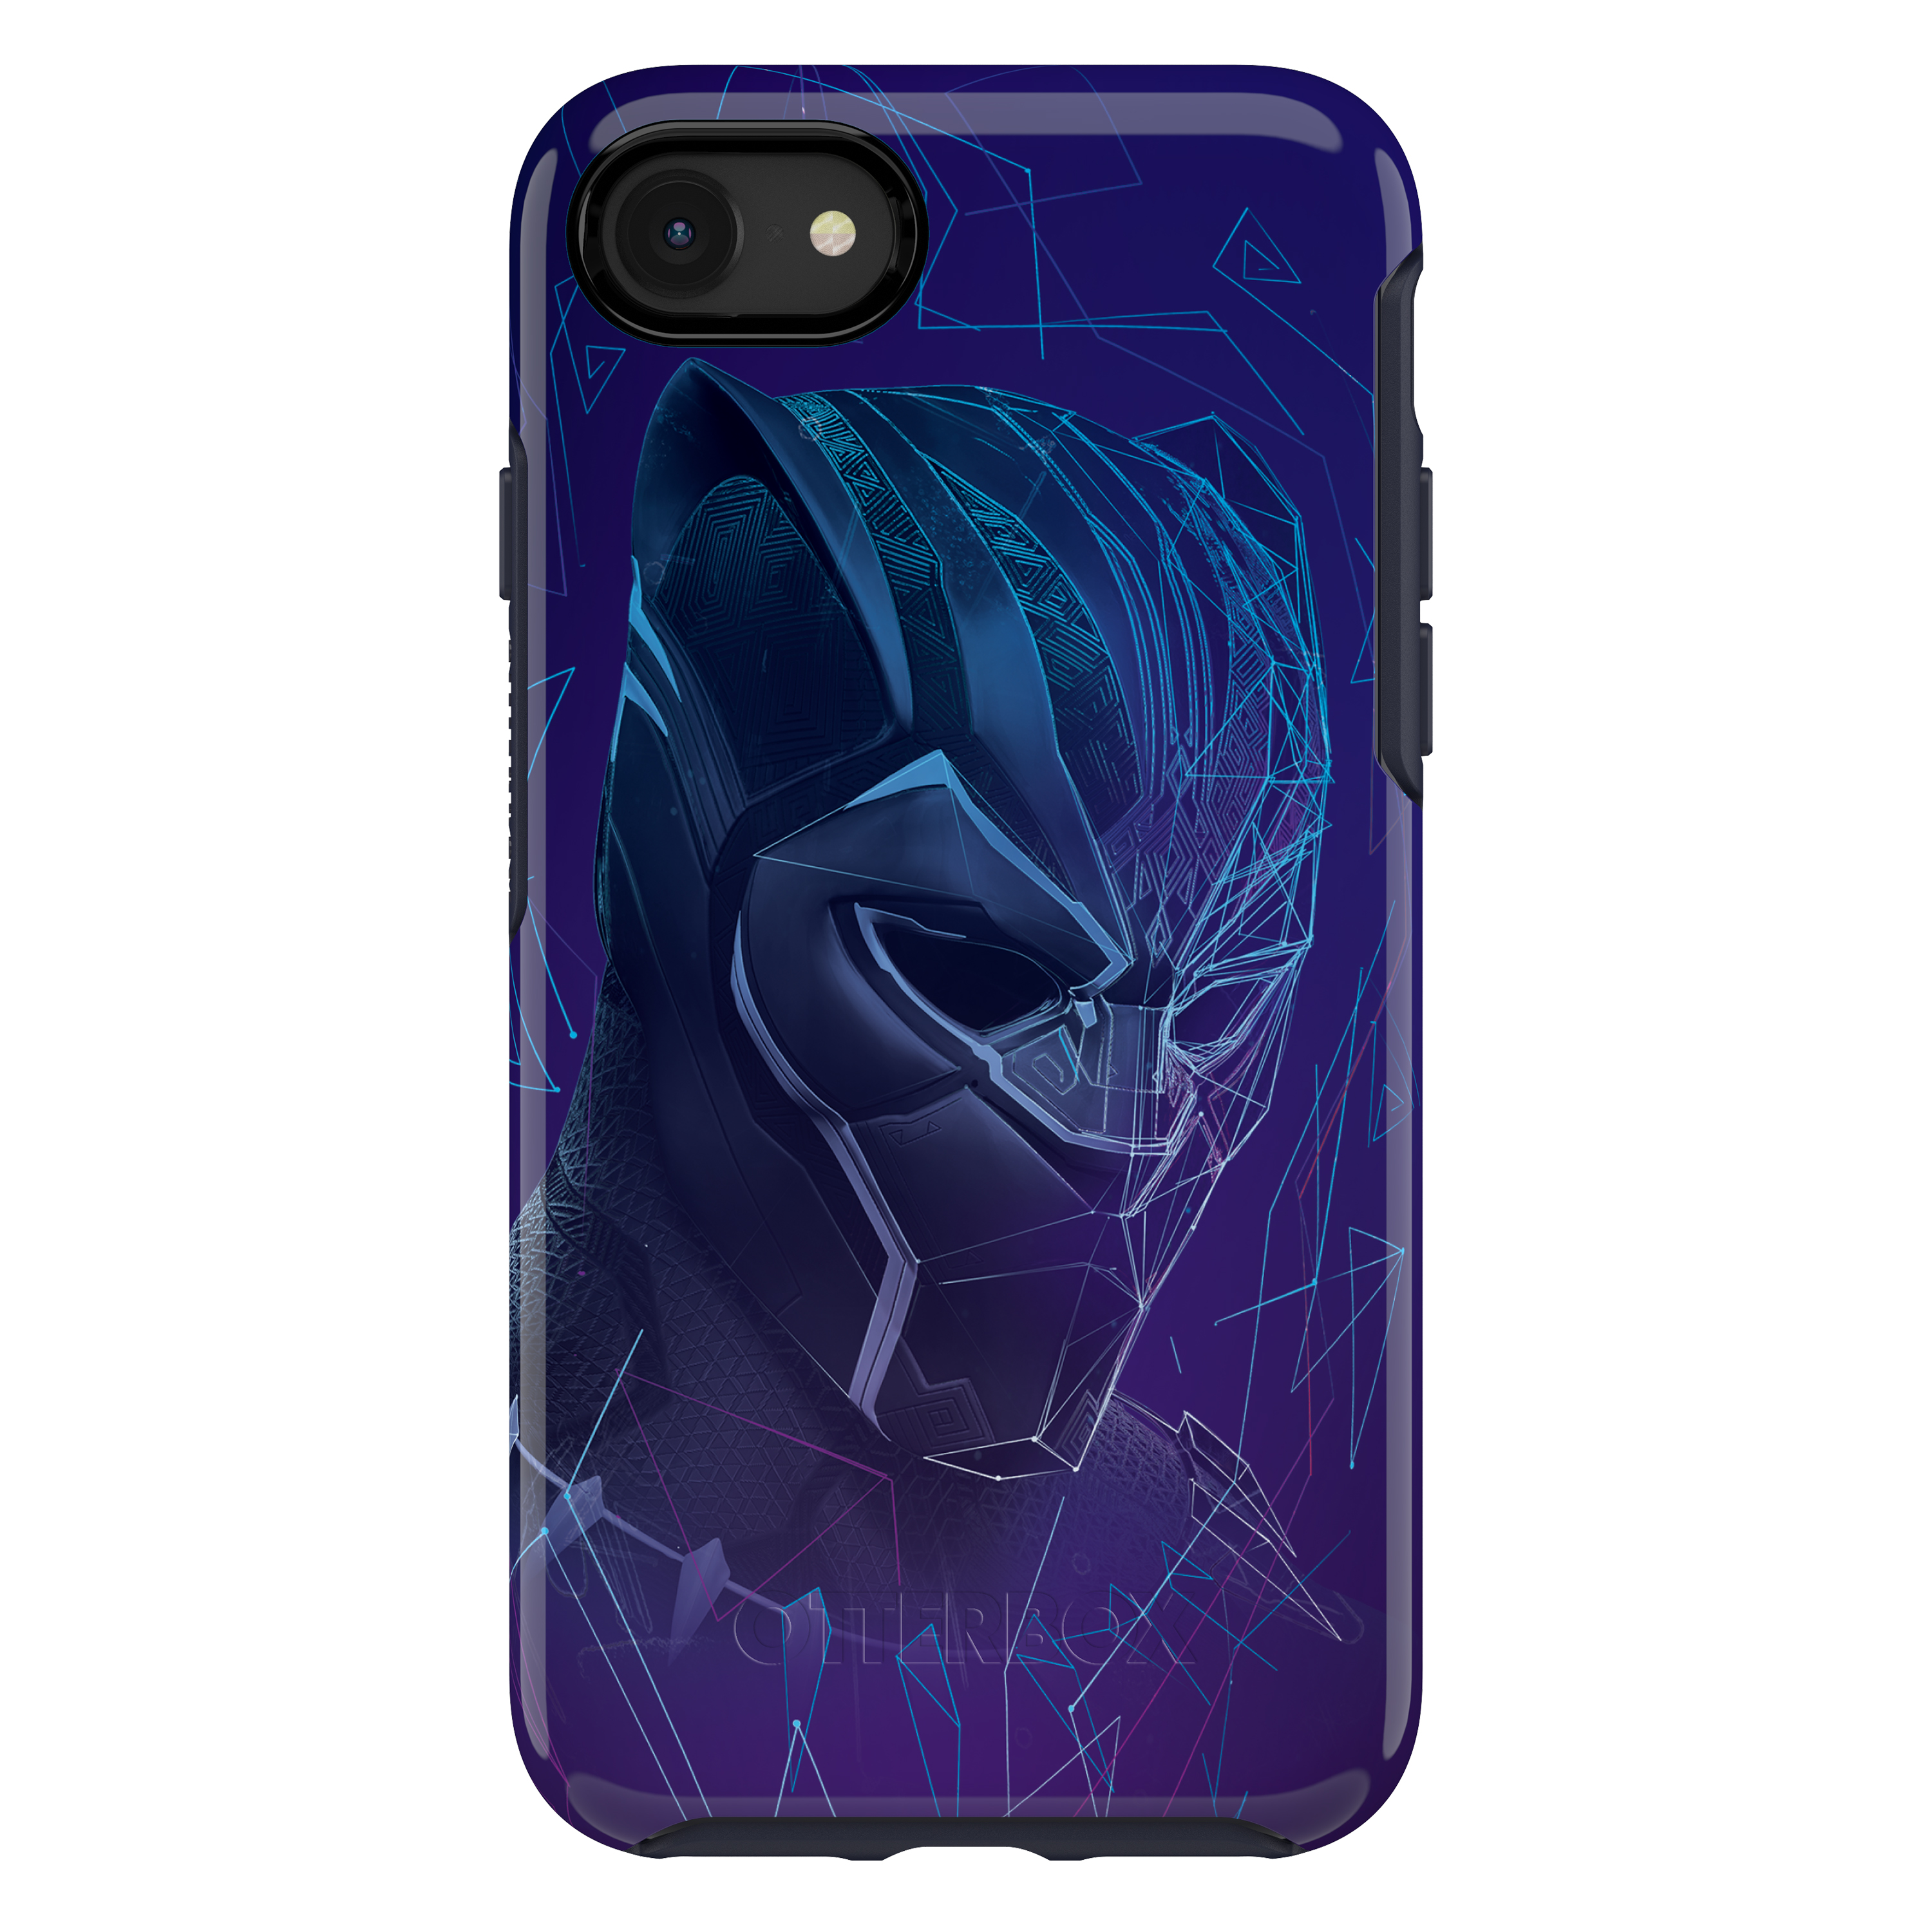 Otterbox Apple Symmetry Case for iPhone 8/7, Black Panther